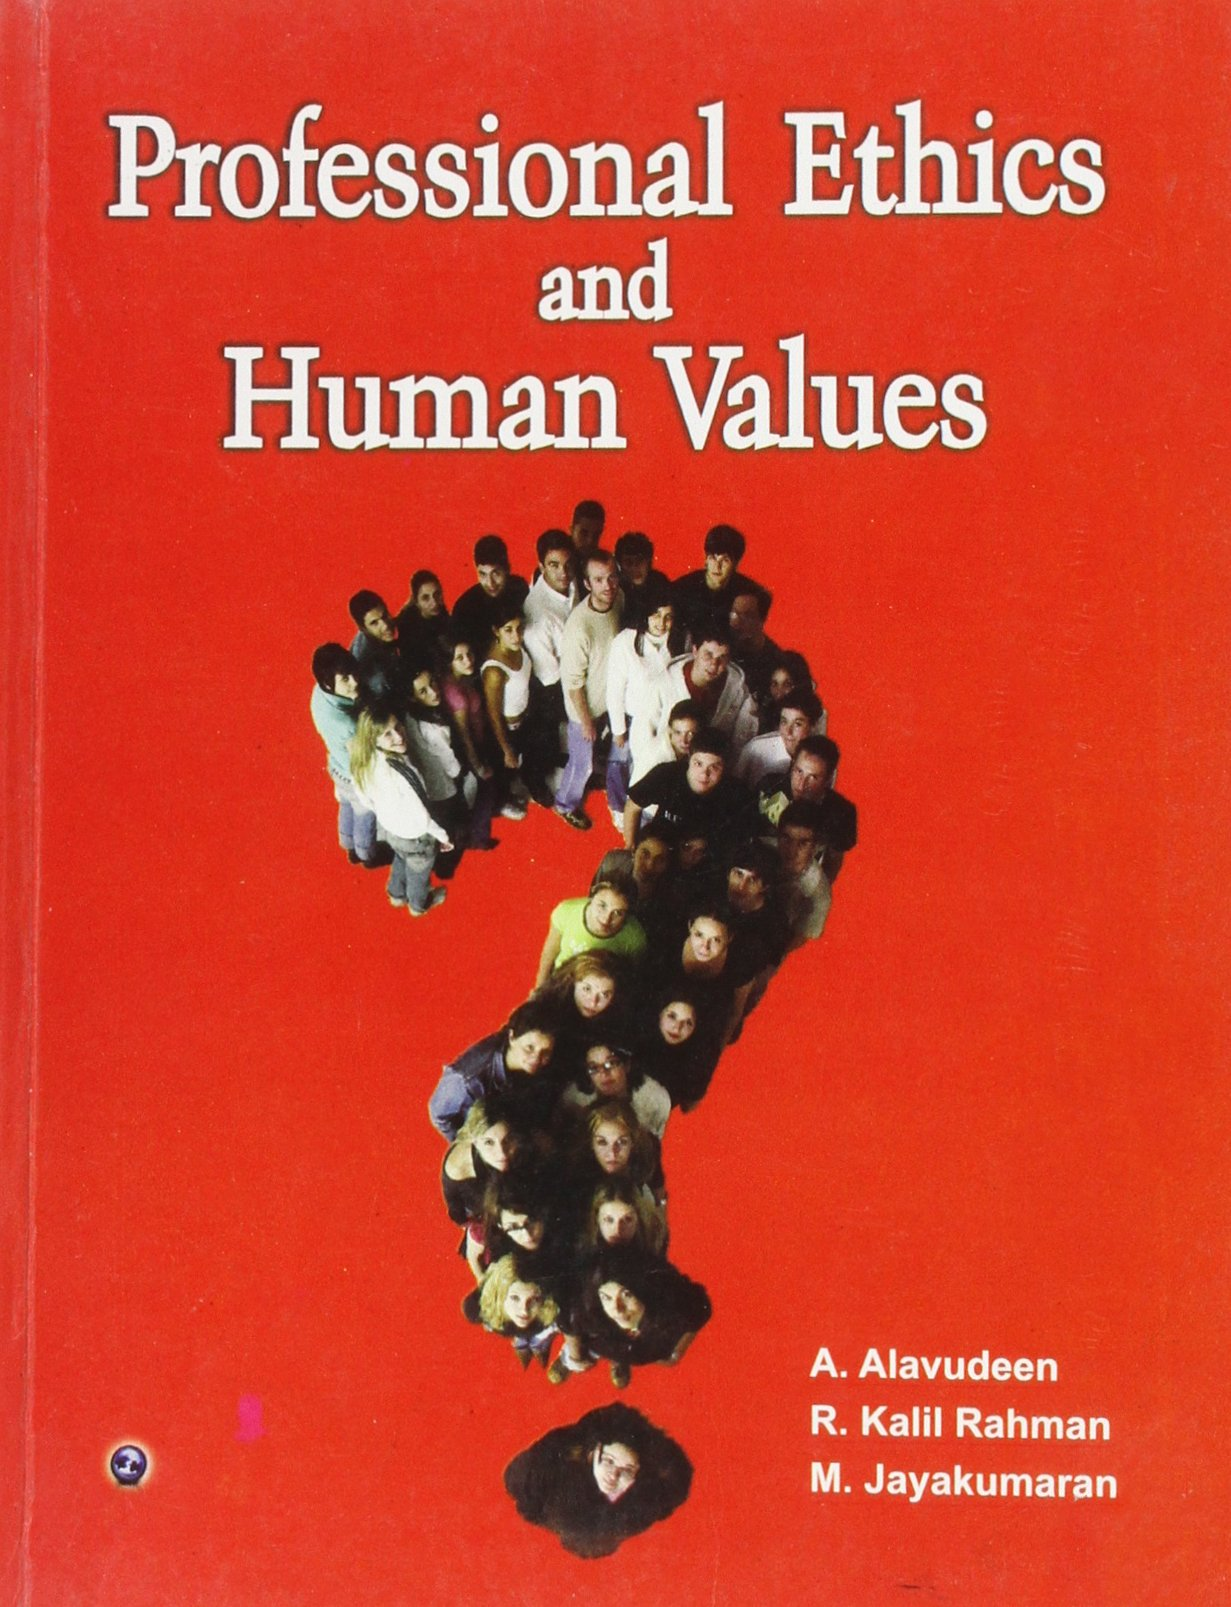 Human Values And Professional Ethics By Rr Gaur Pdf To Jpg